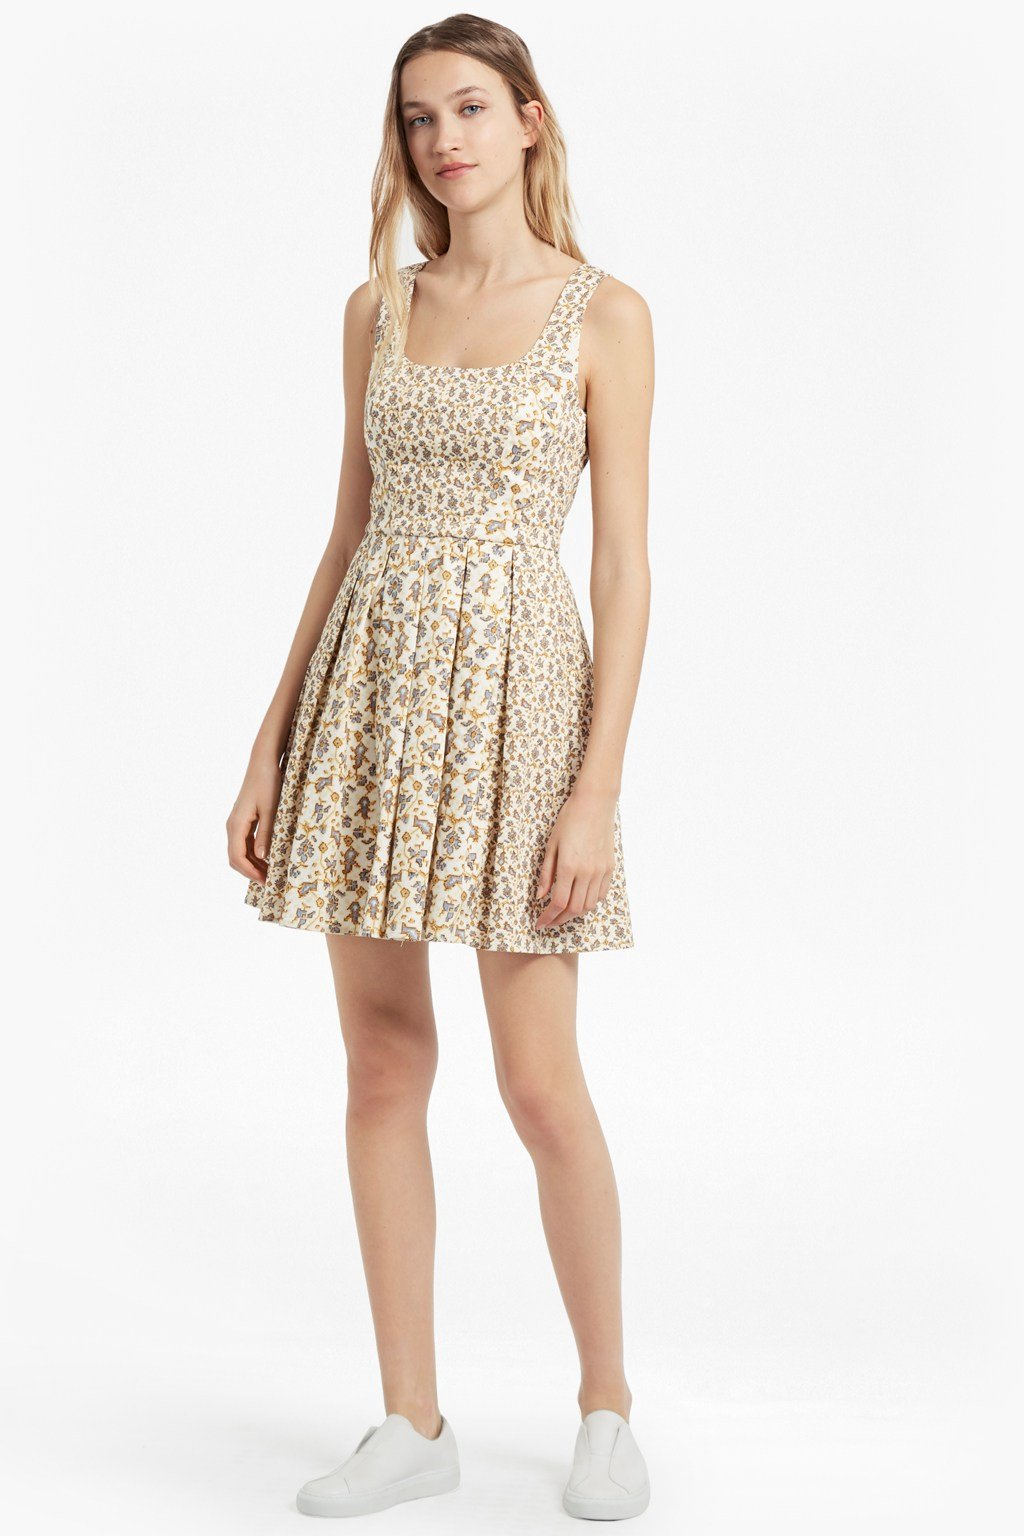 Niko Stretch Embroidered Skater Dress. loading images. 8a306e6c8